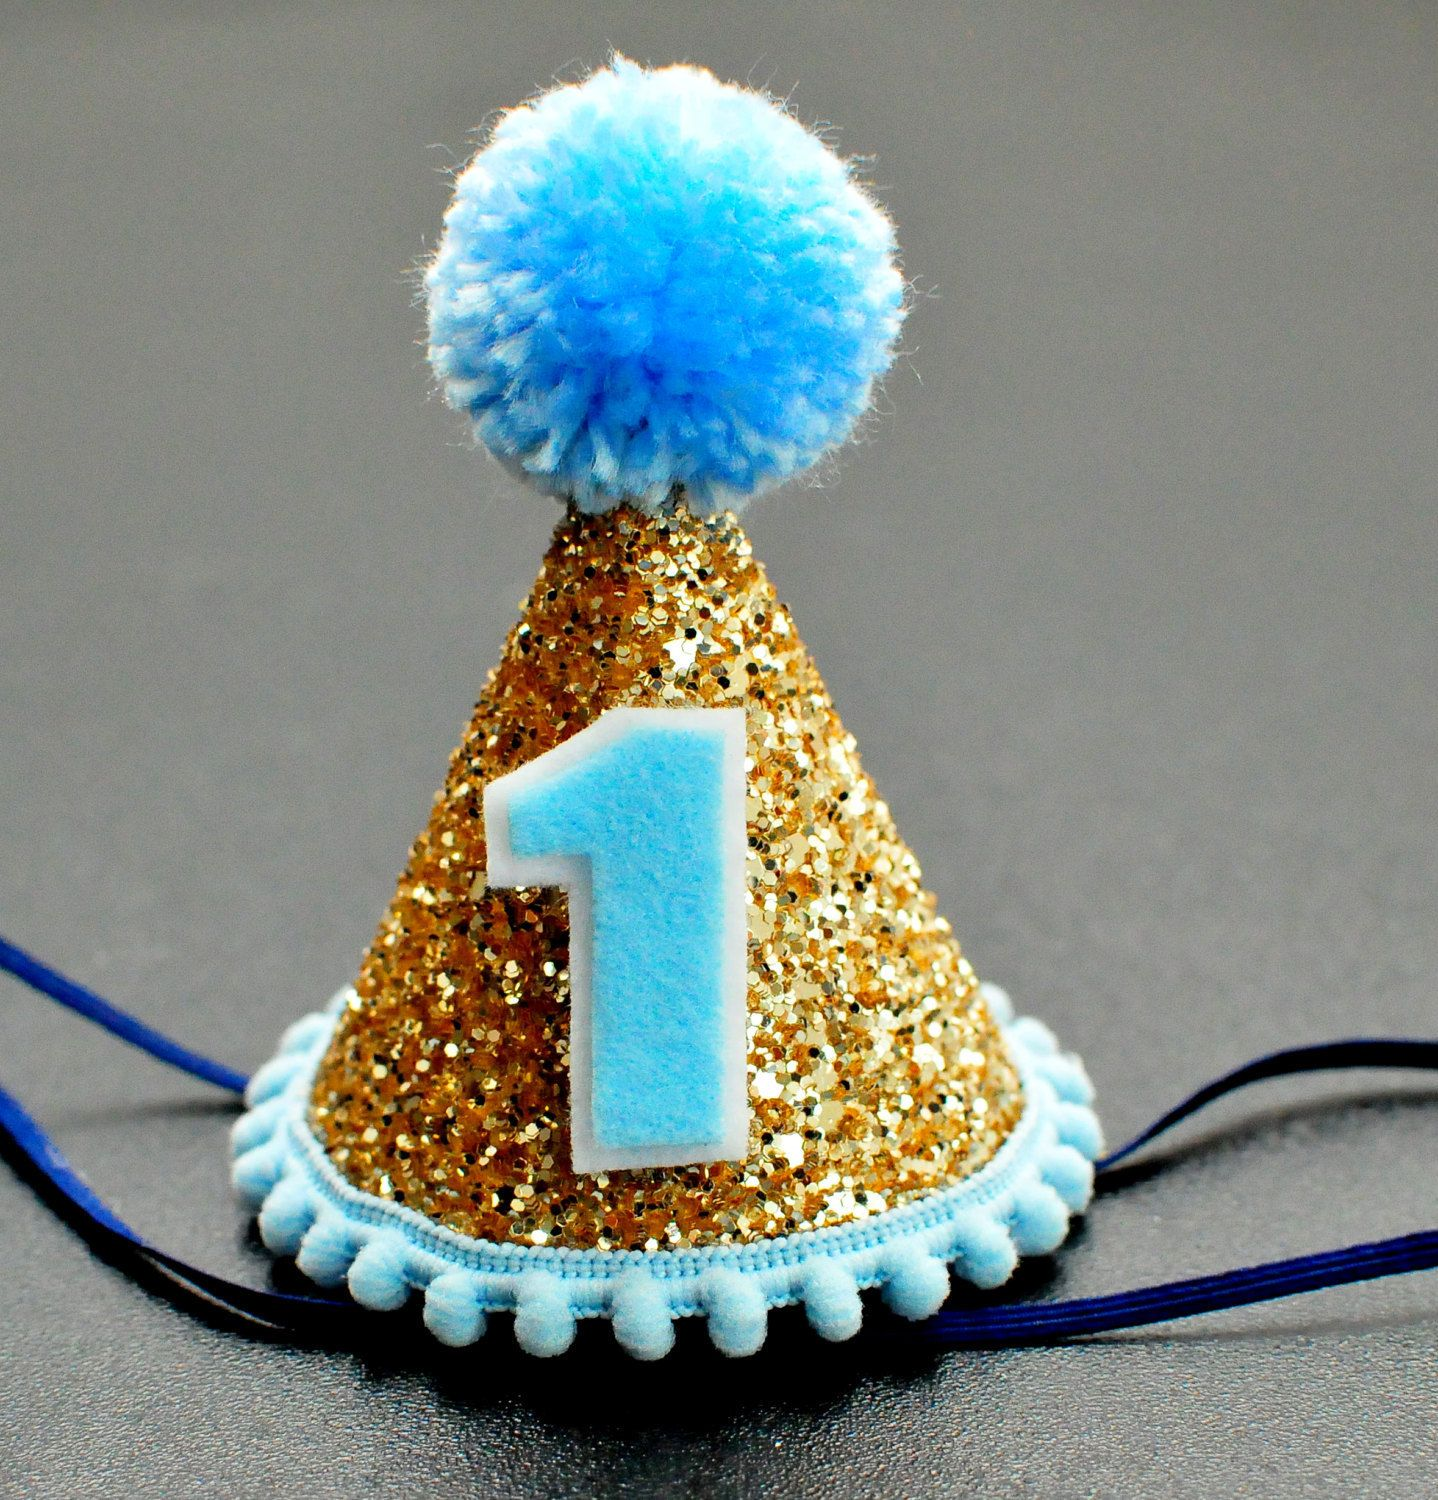 Birthday Mini Party Hat Baby Boy Cake Smash 1st Chunky Glitter Pale Gold Light Blue By LilWishenpoof On Etsy